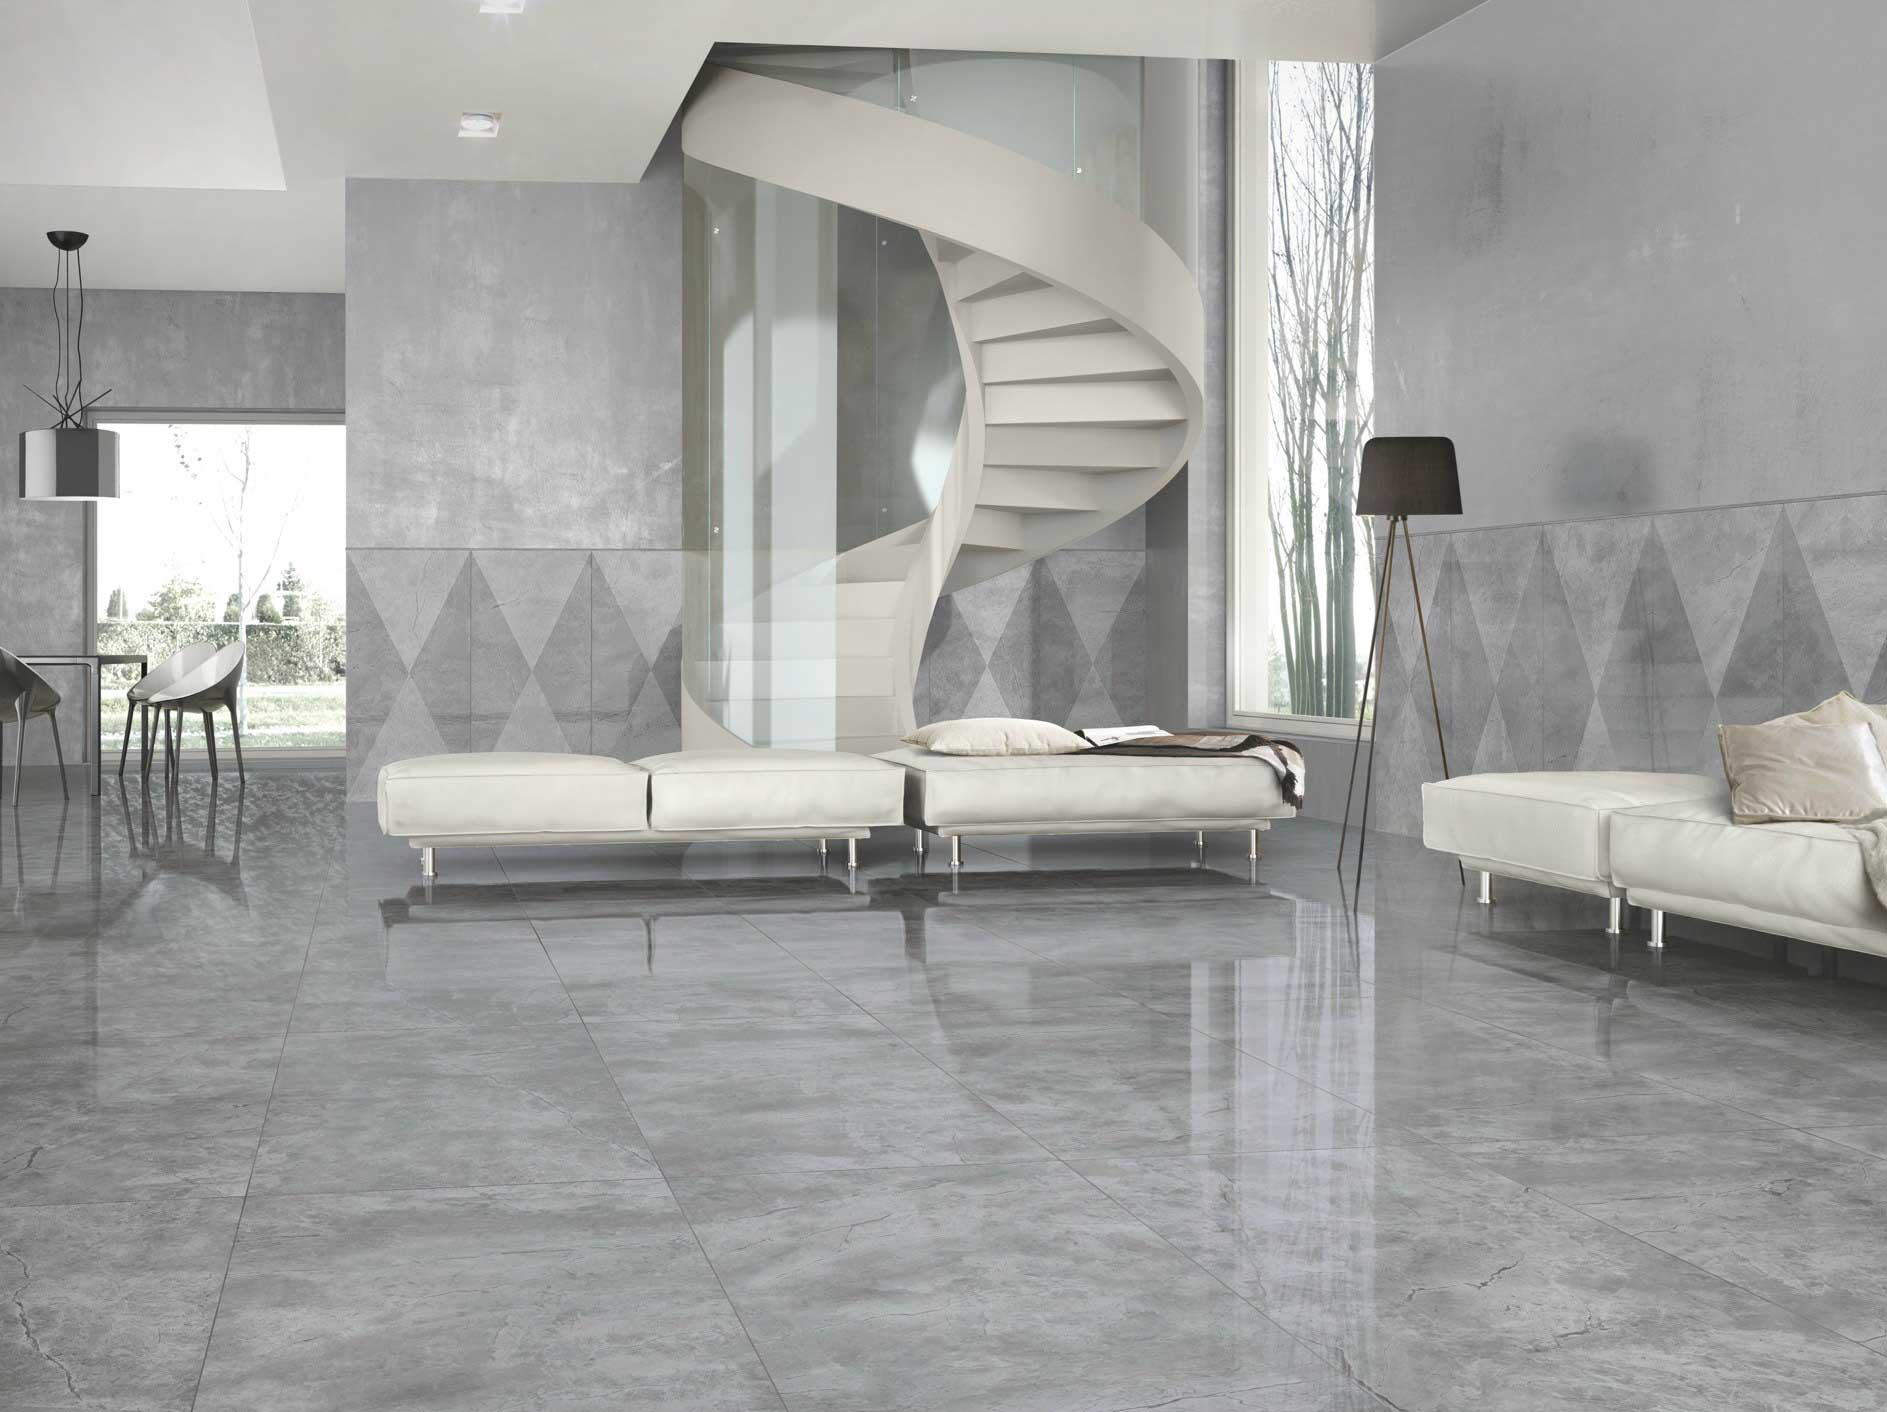 Marble polishing & restoration services in Miami